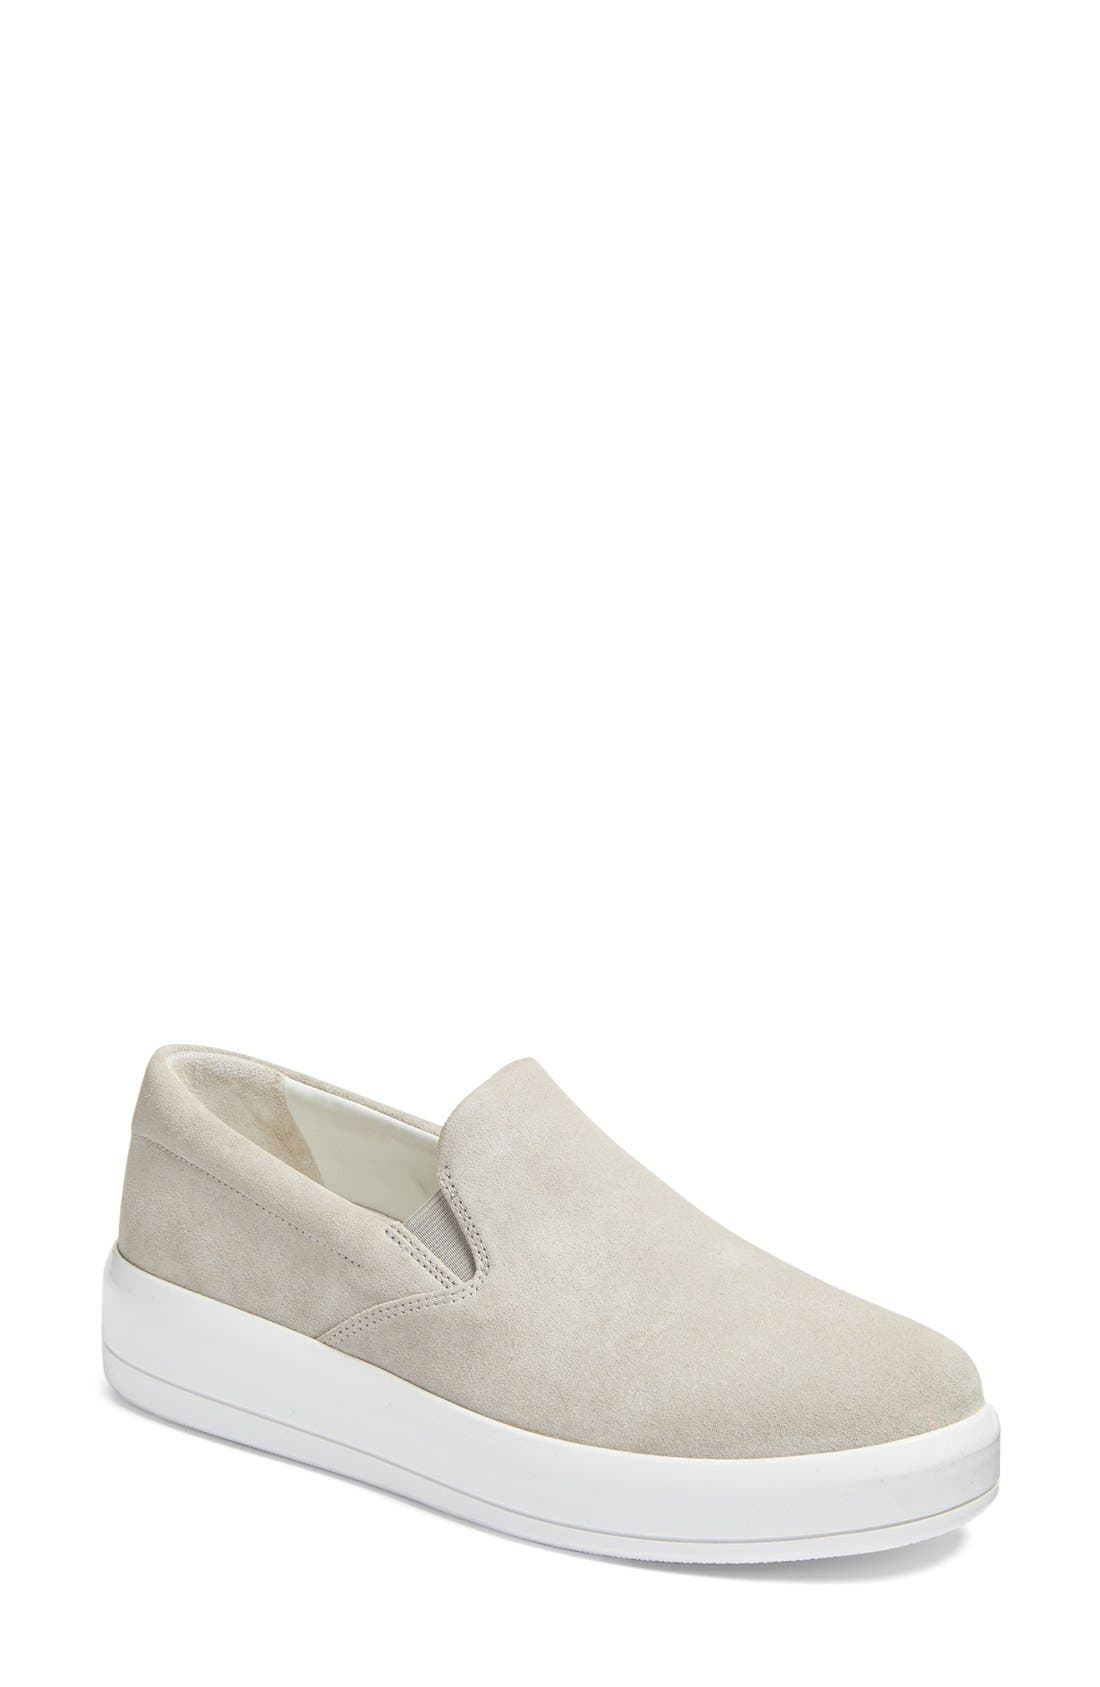 Prada Slip-On Sneaker (Women)